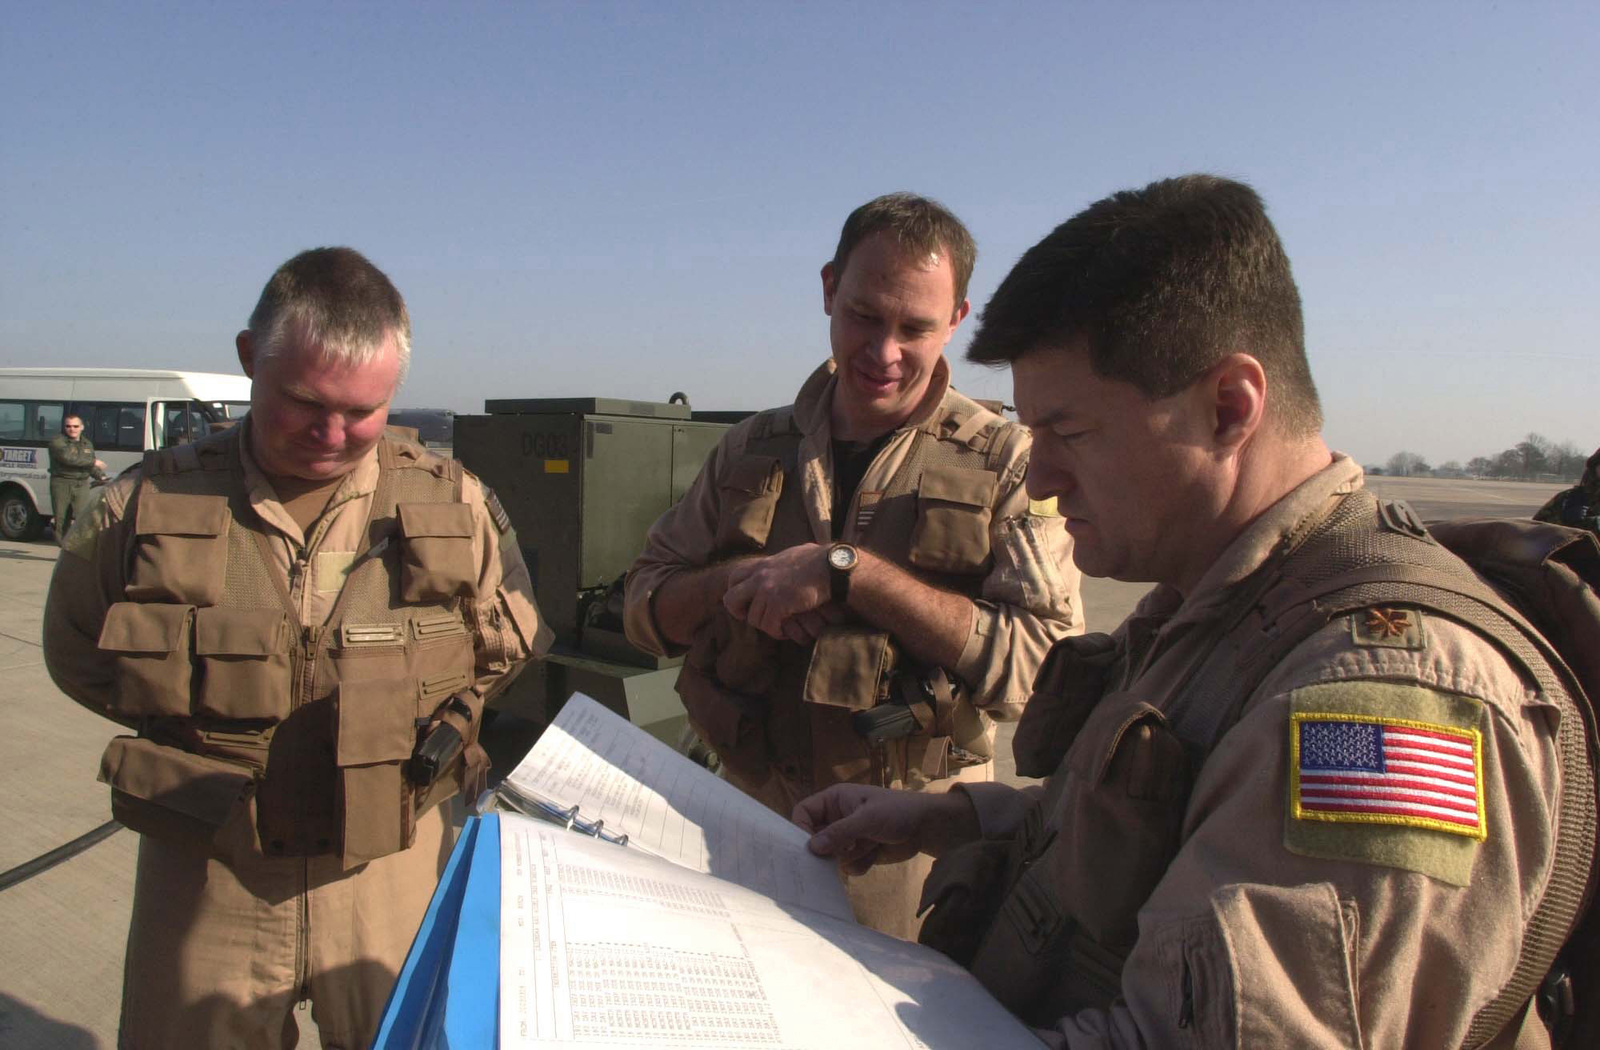 US Air Force (USAF) Major (MAJ) Jeffrey, Aircraft Commander (right), USAF MAJ Gregory, Pilot, and USAF MAJ William (left), Electronic Warfare Officer (EWO), all from 23rd Expeditionary Bomb Squadron (EBS), Minot Air Force Base (AFB), North Dakota (ND), go over the checklist to their B-52H Stratofortress bomber prior to a mission against Iraqi targets, during Operation IRAQI FREEDOM